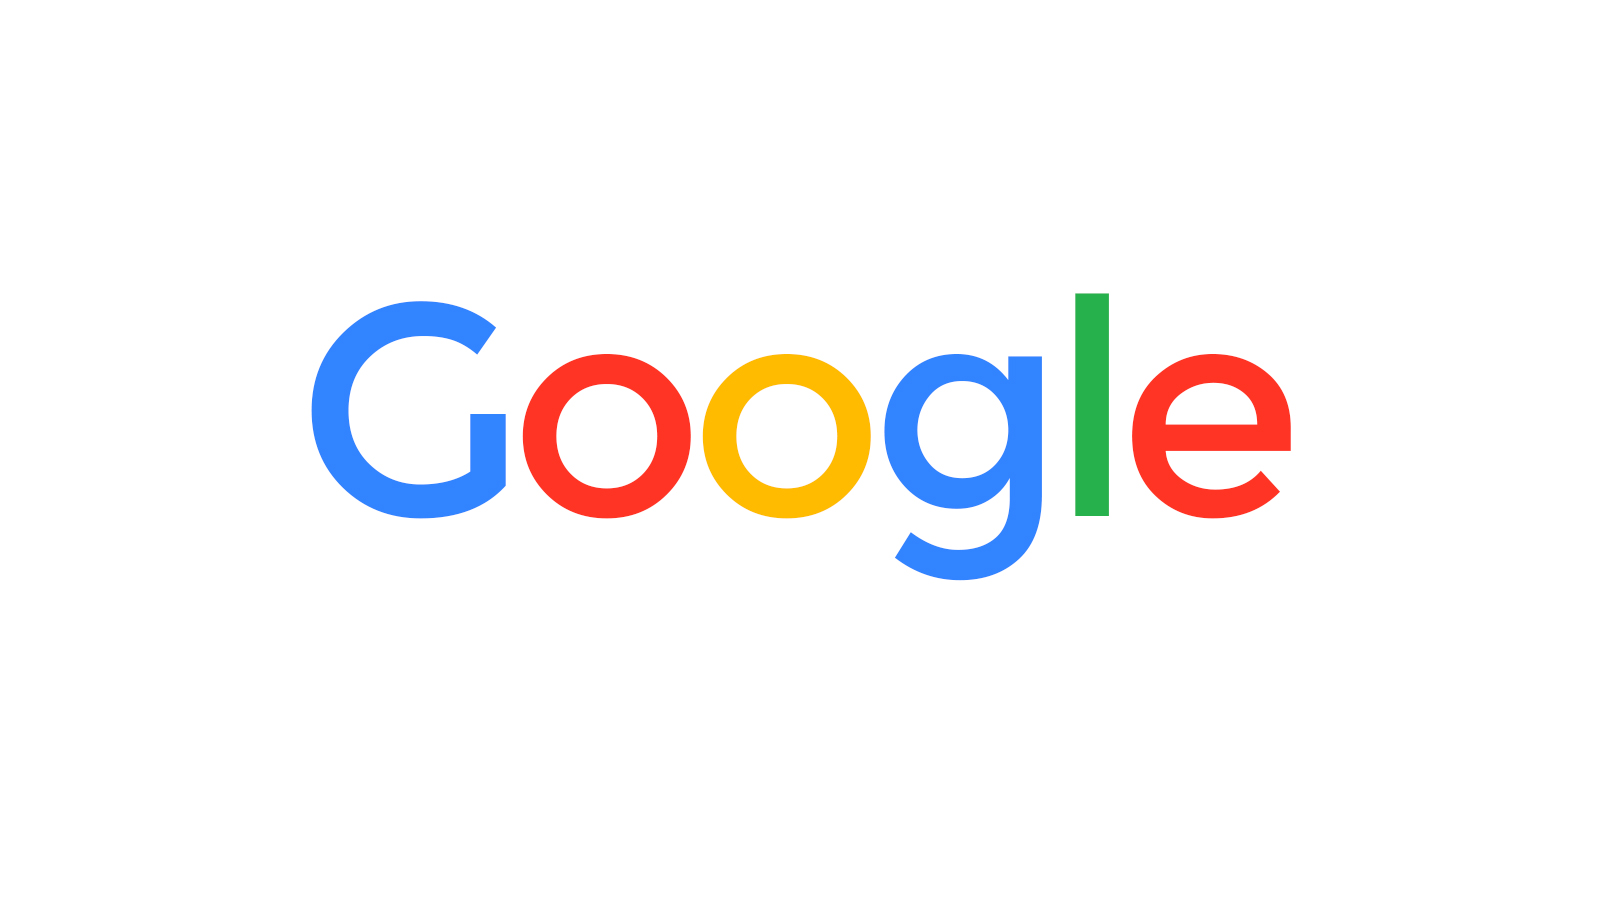 Google - How can I find a good Plastic Surgery Expert Witness?